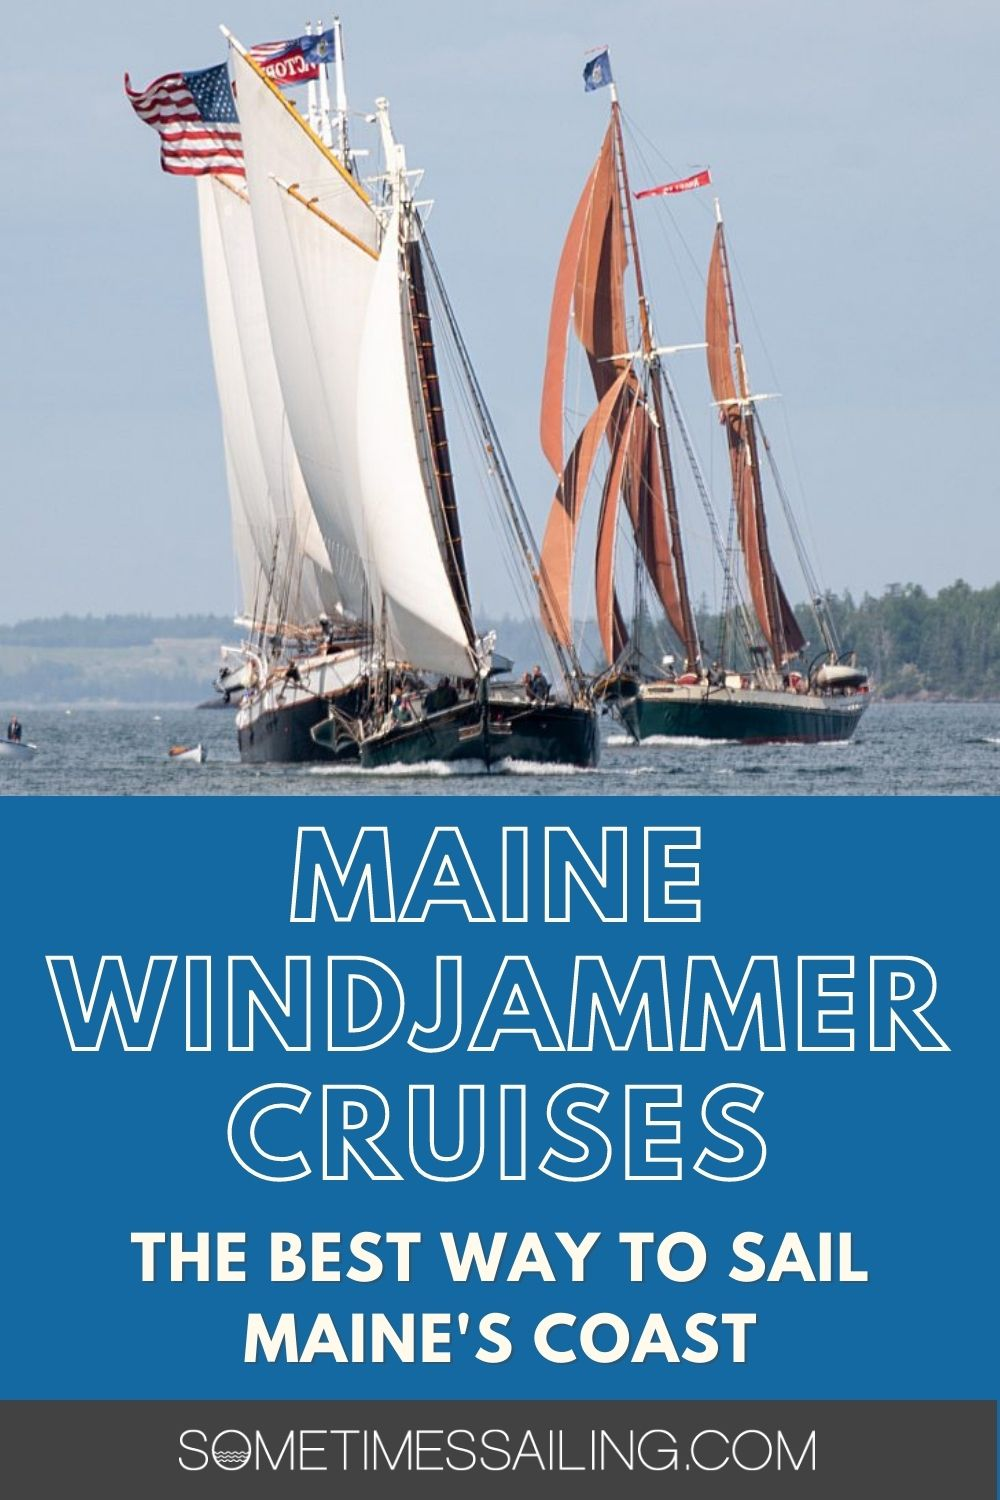 Maine Windjammer Cruises: the best way to Sail Maine's coast, with a photo of two sailboats on the water.